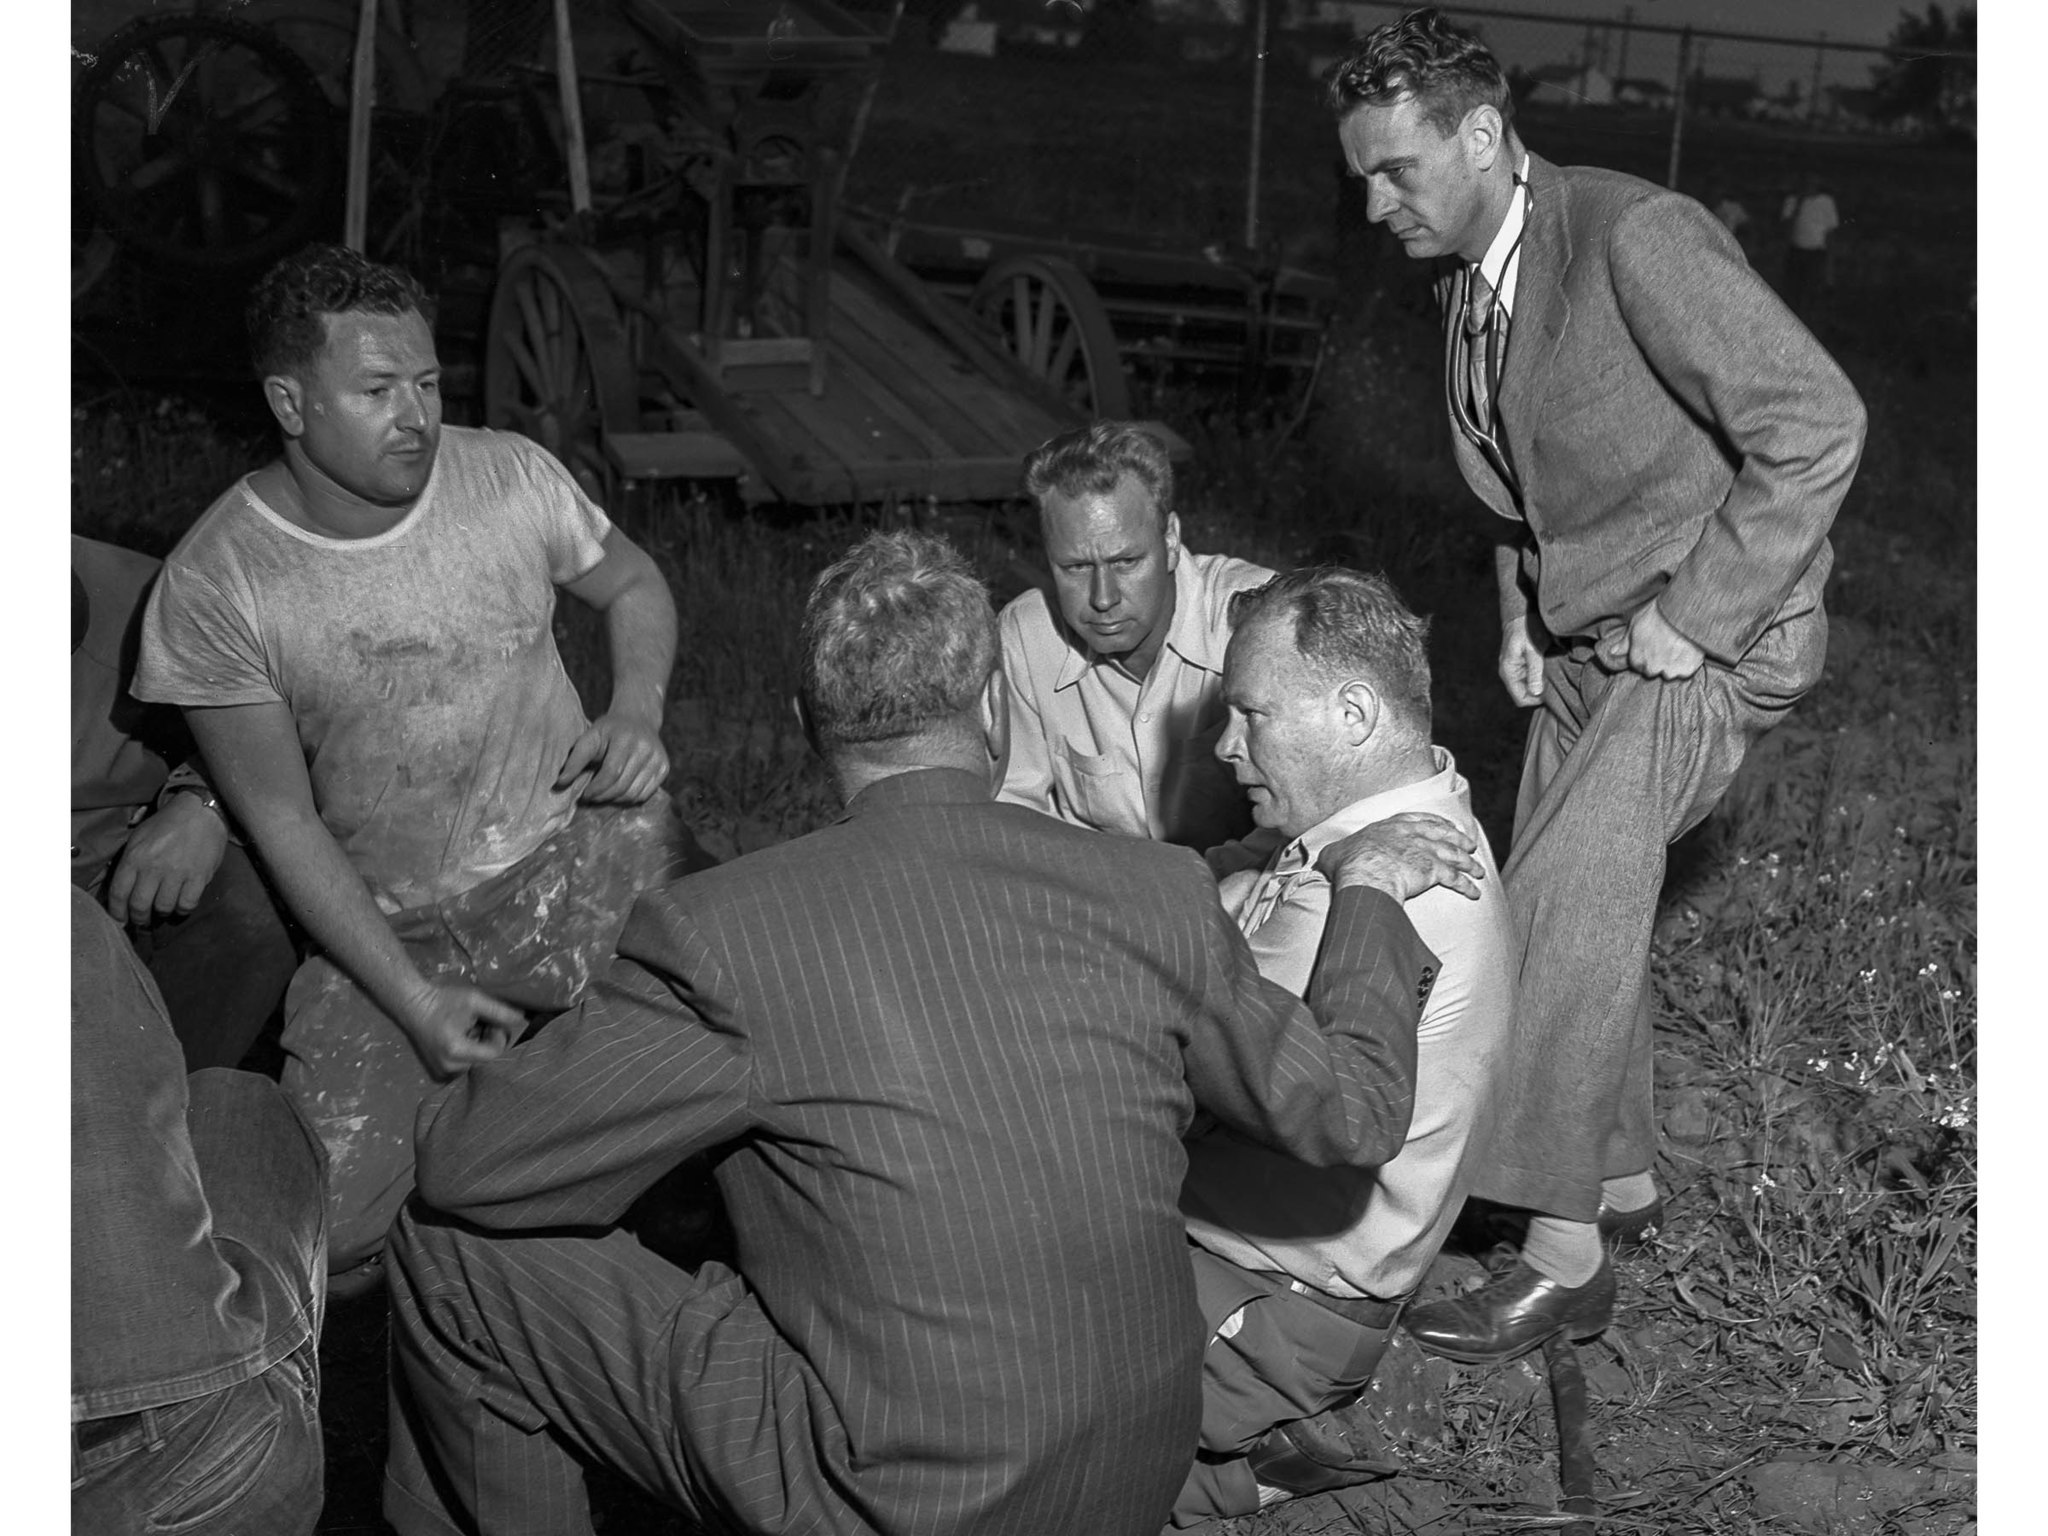 April 8, 1949: Rescue effort scene for Kathy Fiscus. Pasadena Fire Chief, back to camera, puts arm o